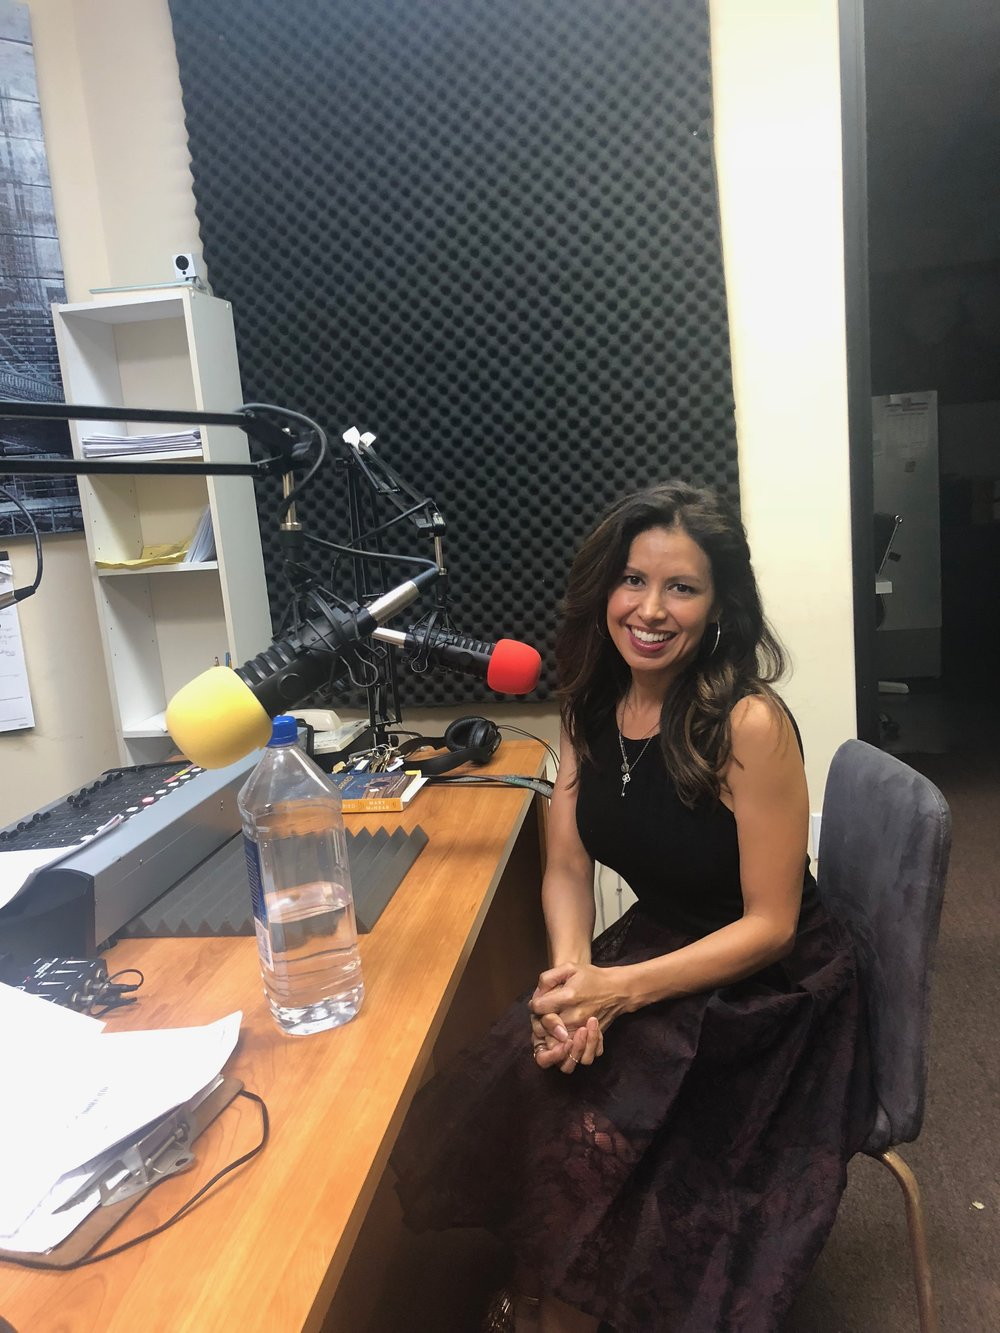 Promoting! Promoting! - Interviewed by the wonderful Josefa Salinas and got to plug my appearances on The Big Bang Theory, Macgyver and Sorry For Your Loss